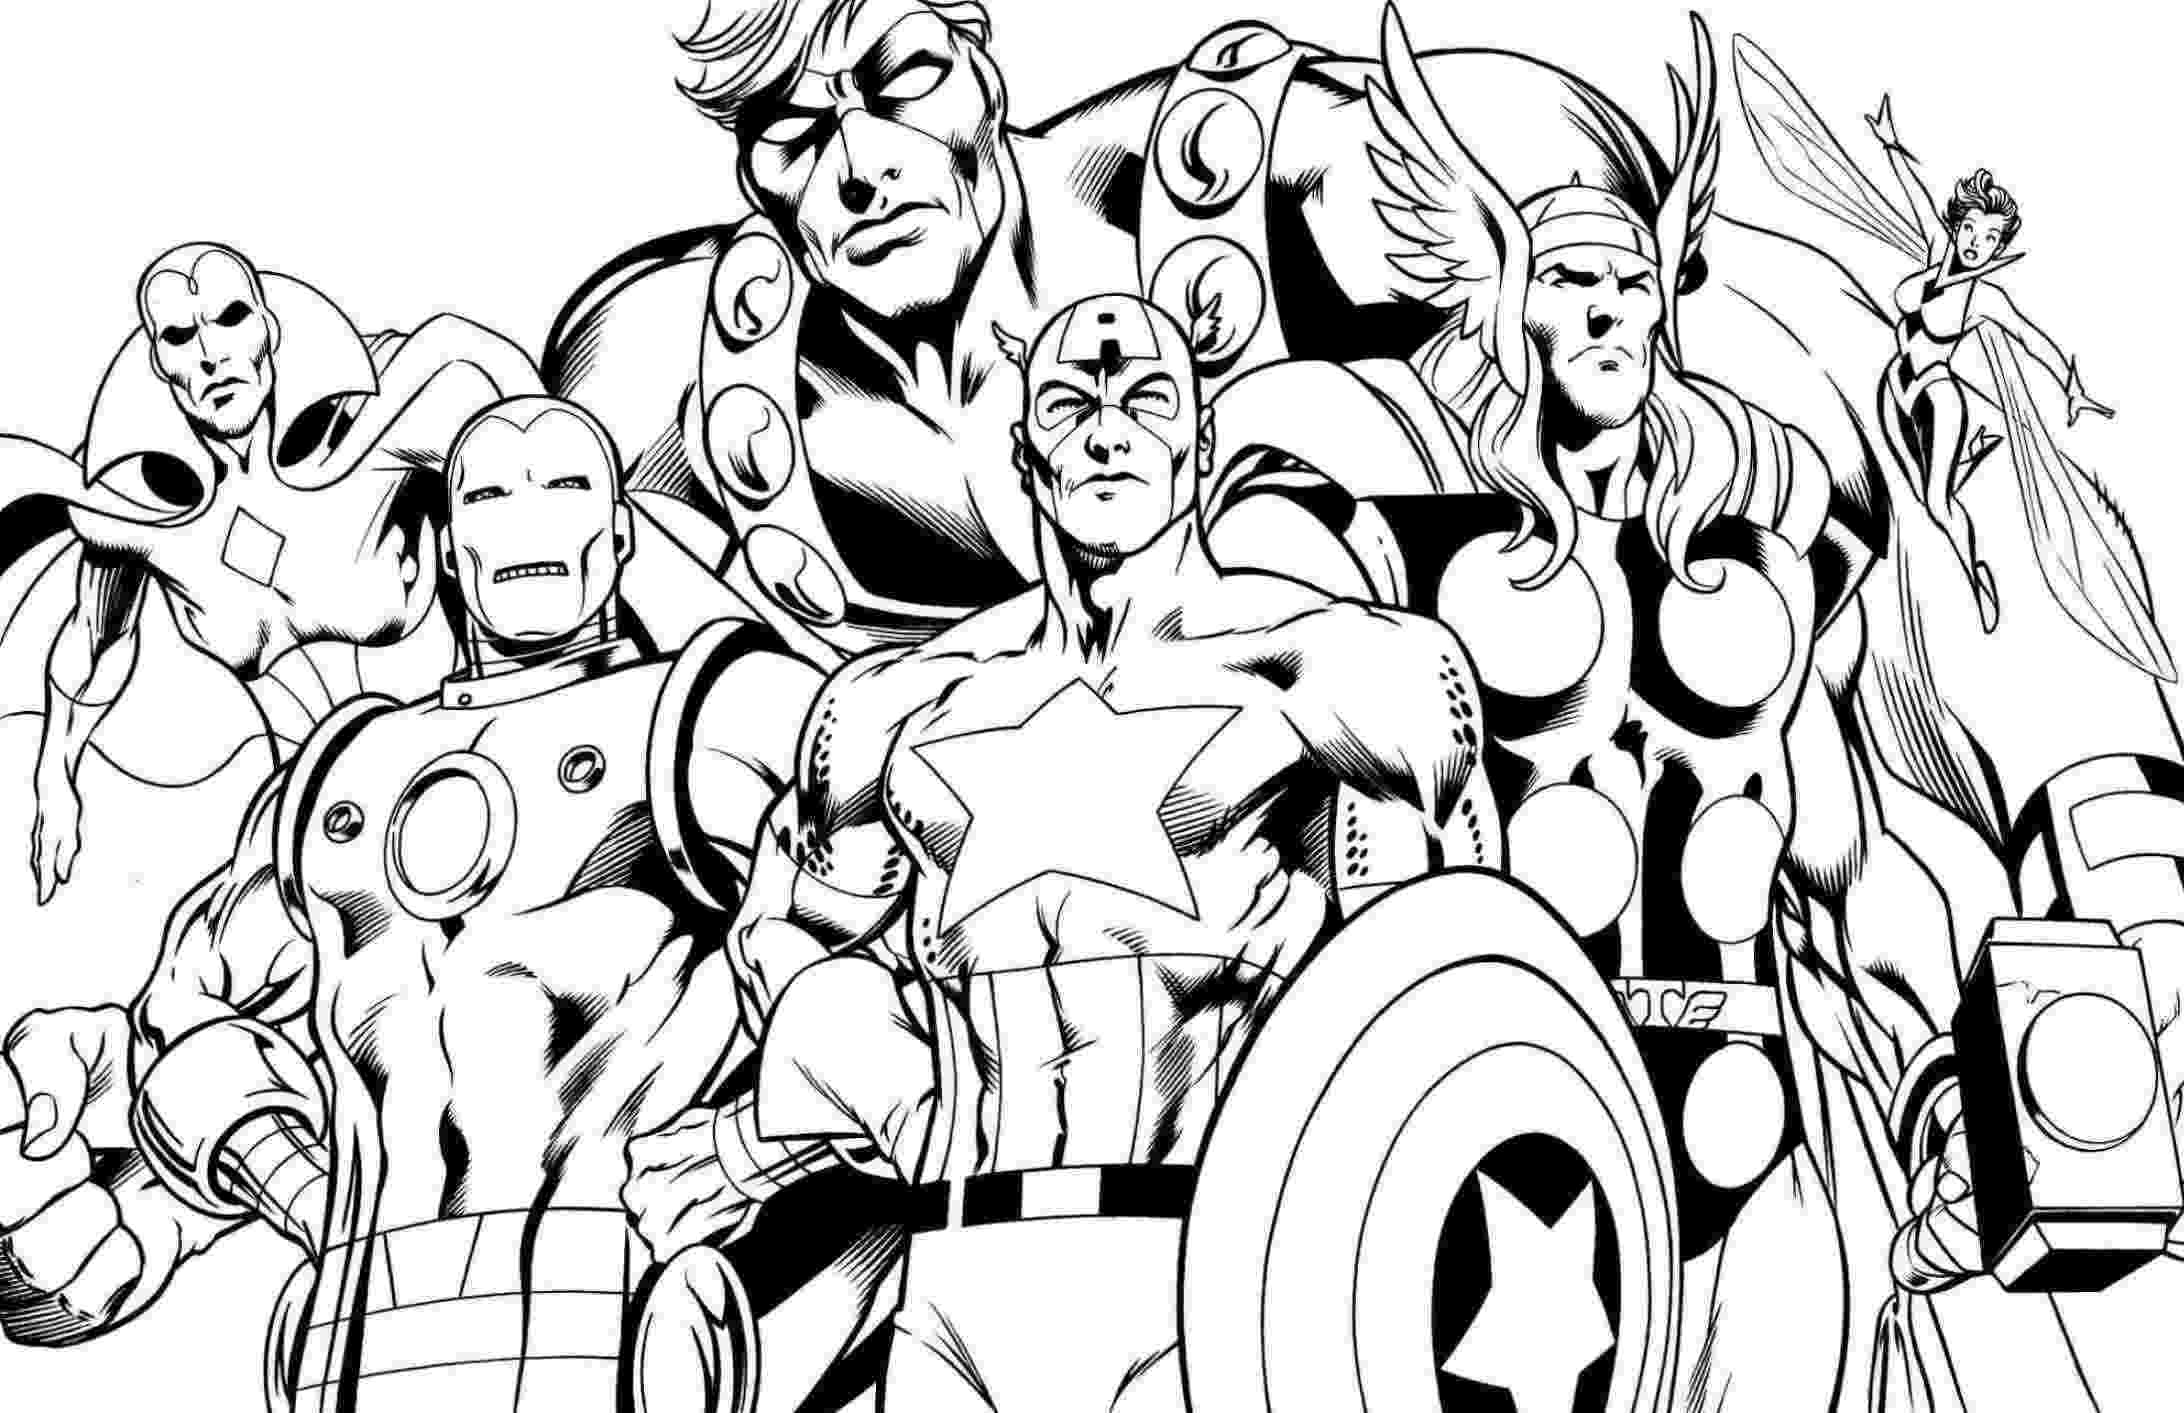 super heroes coloring pages superhero coloring pages best coloring pages for kids super heroes coloring pages